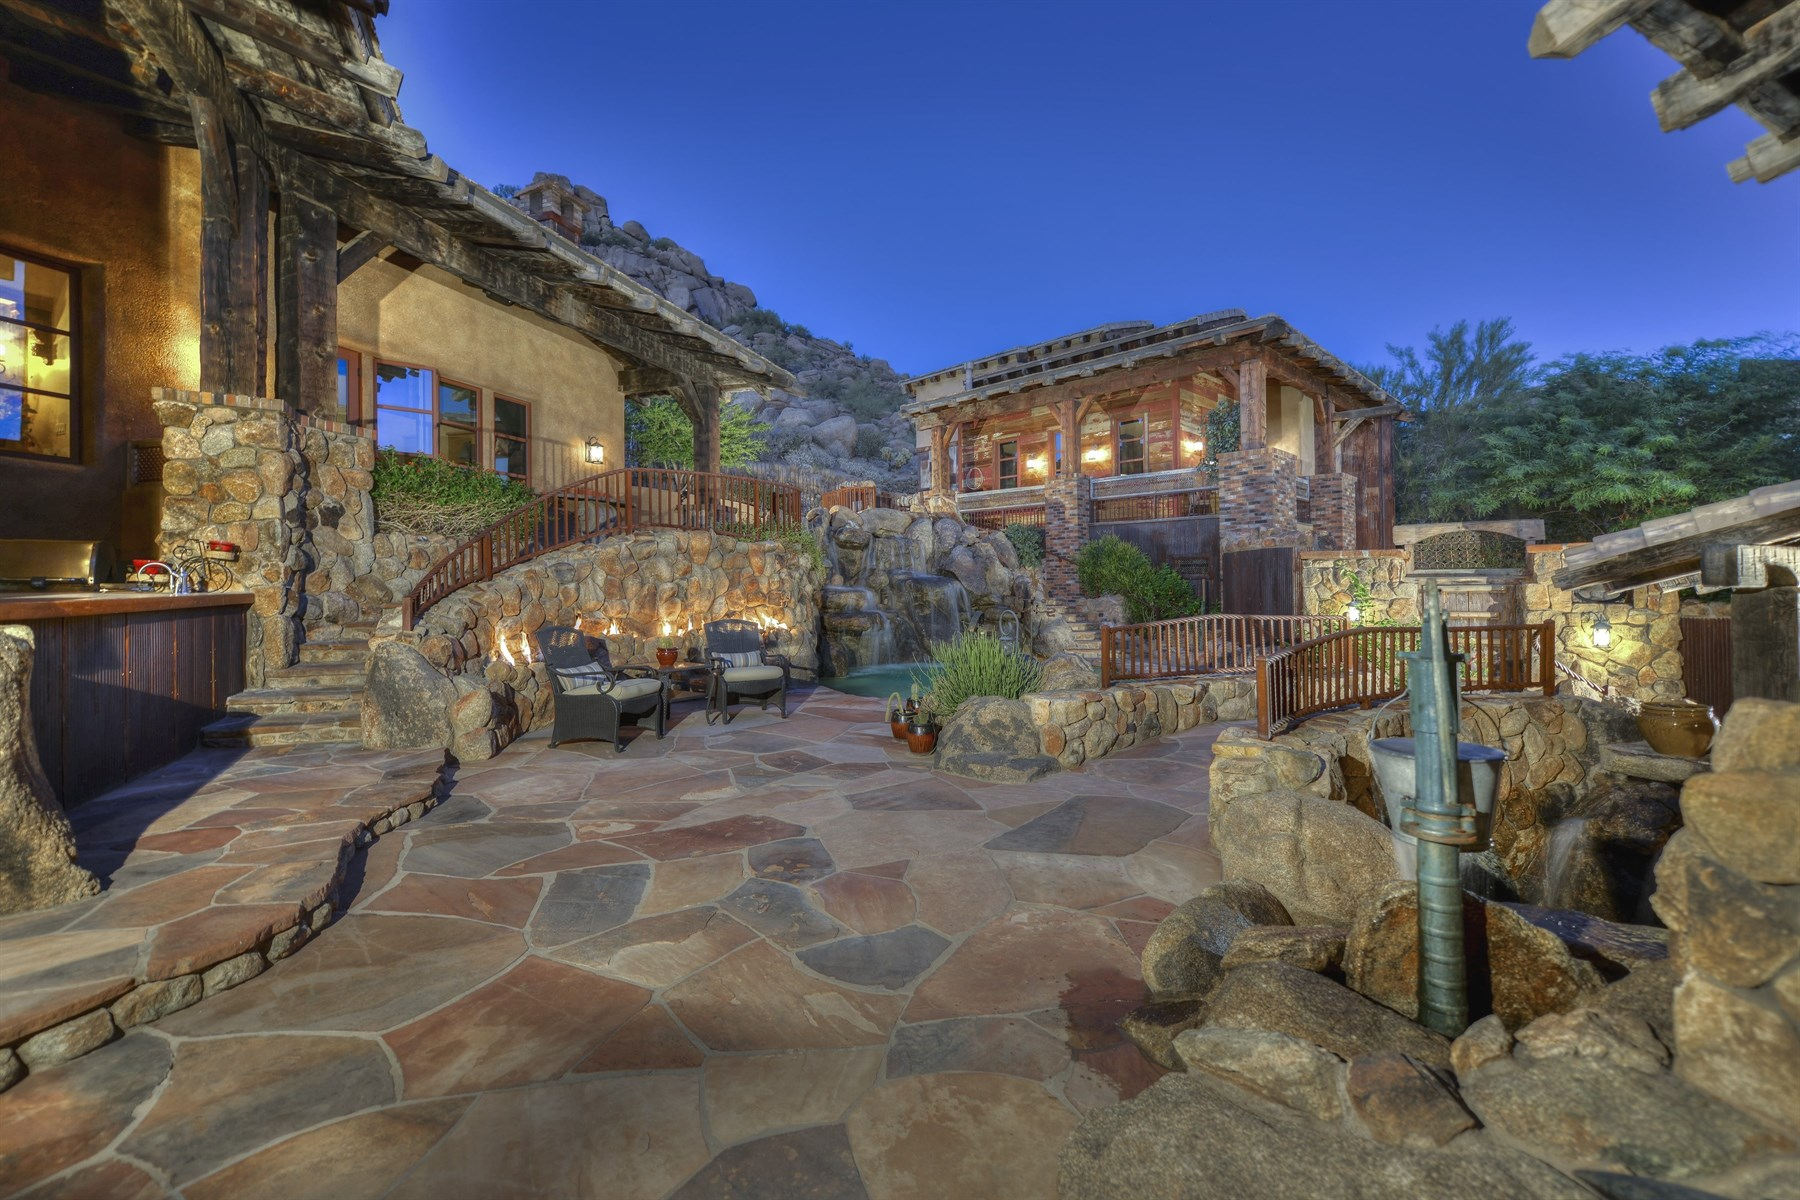 一戸建て のために 売買 アット Elegant and Rustic Arizona-style on an elevated lot in Estancia 27555 N 103rd Way Scottsdale, アリゾナ, 85262 アメリカ合衆国